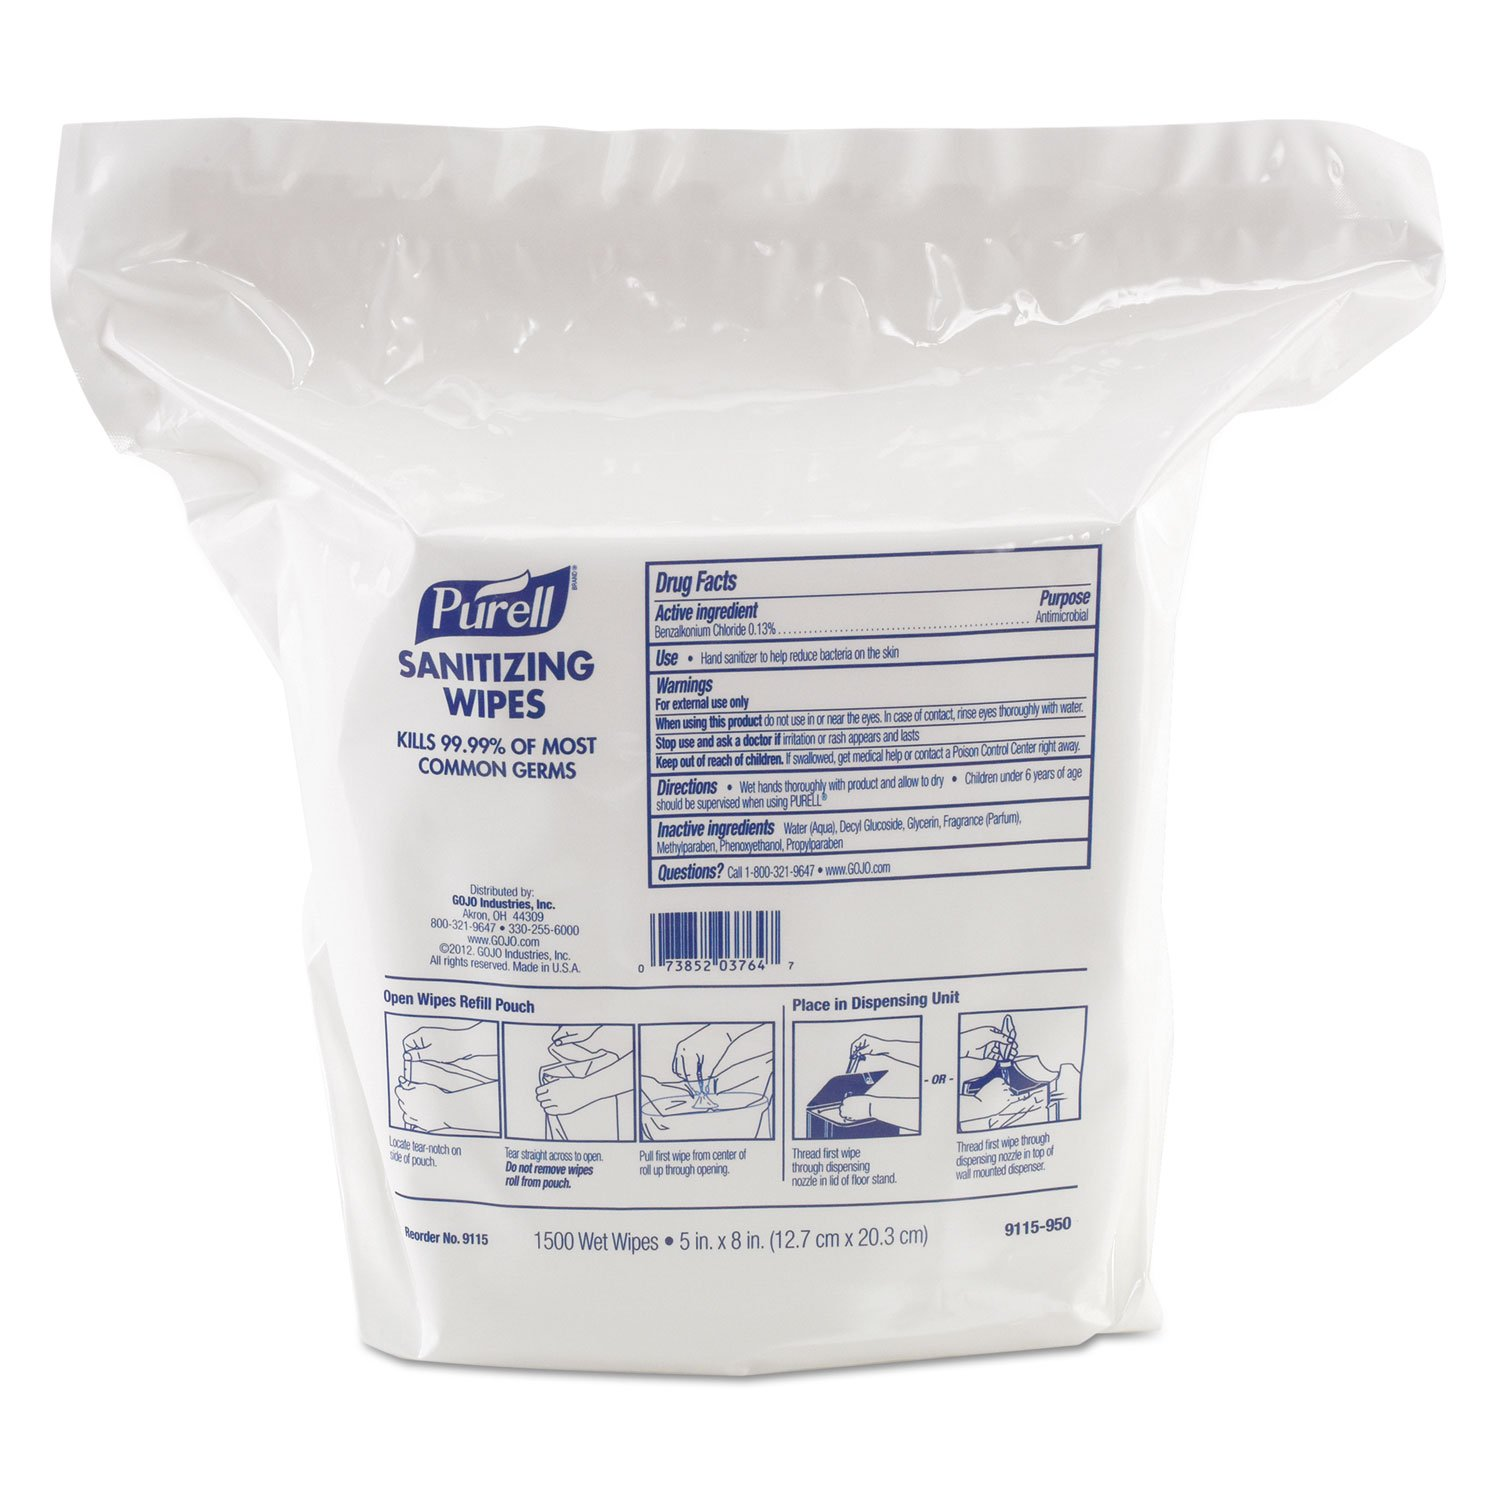 PURELL HAND SANI WIPES 1500CT 2